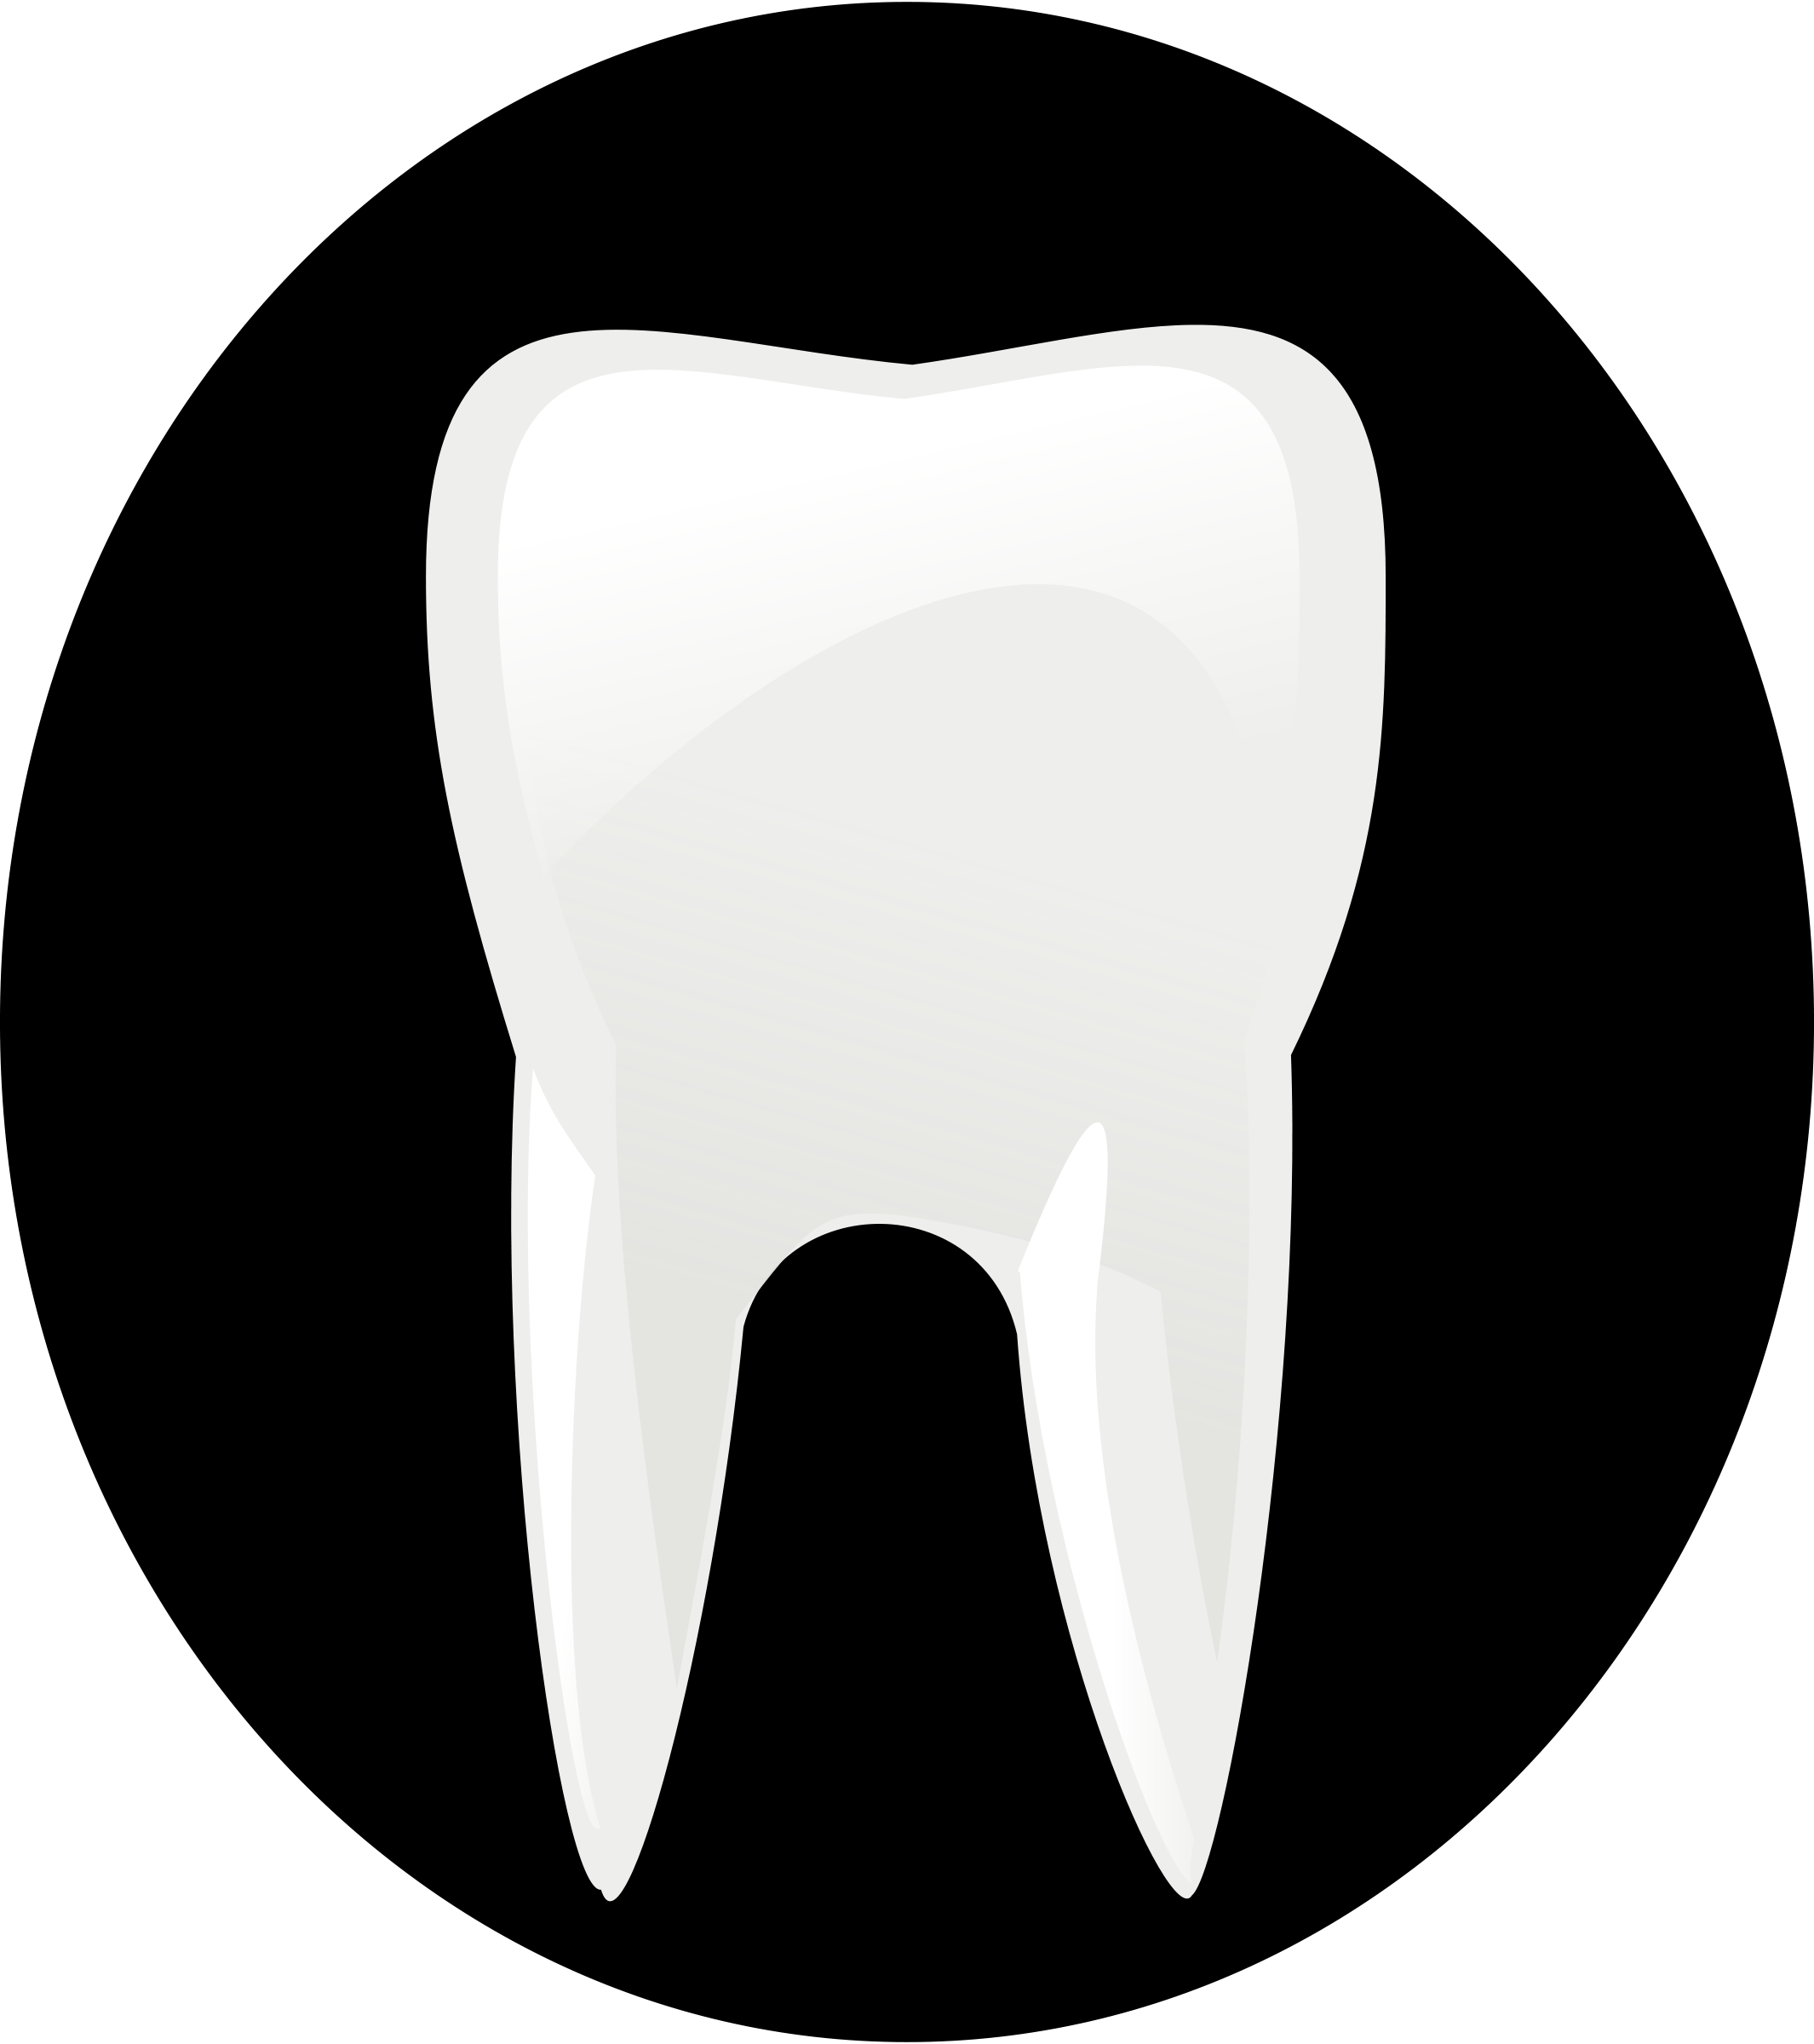 Teeth clipart character. Tooth clip art free